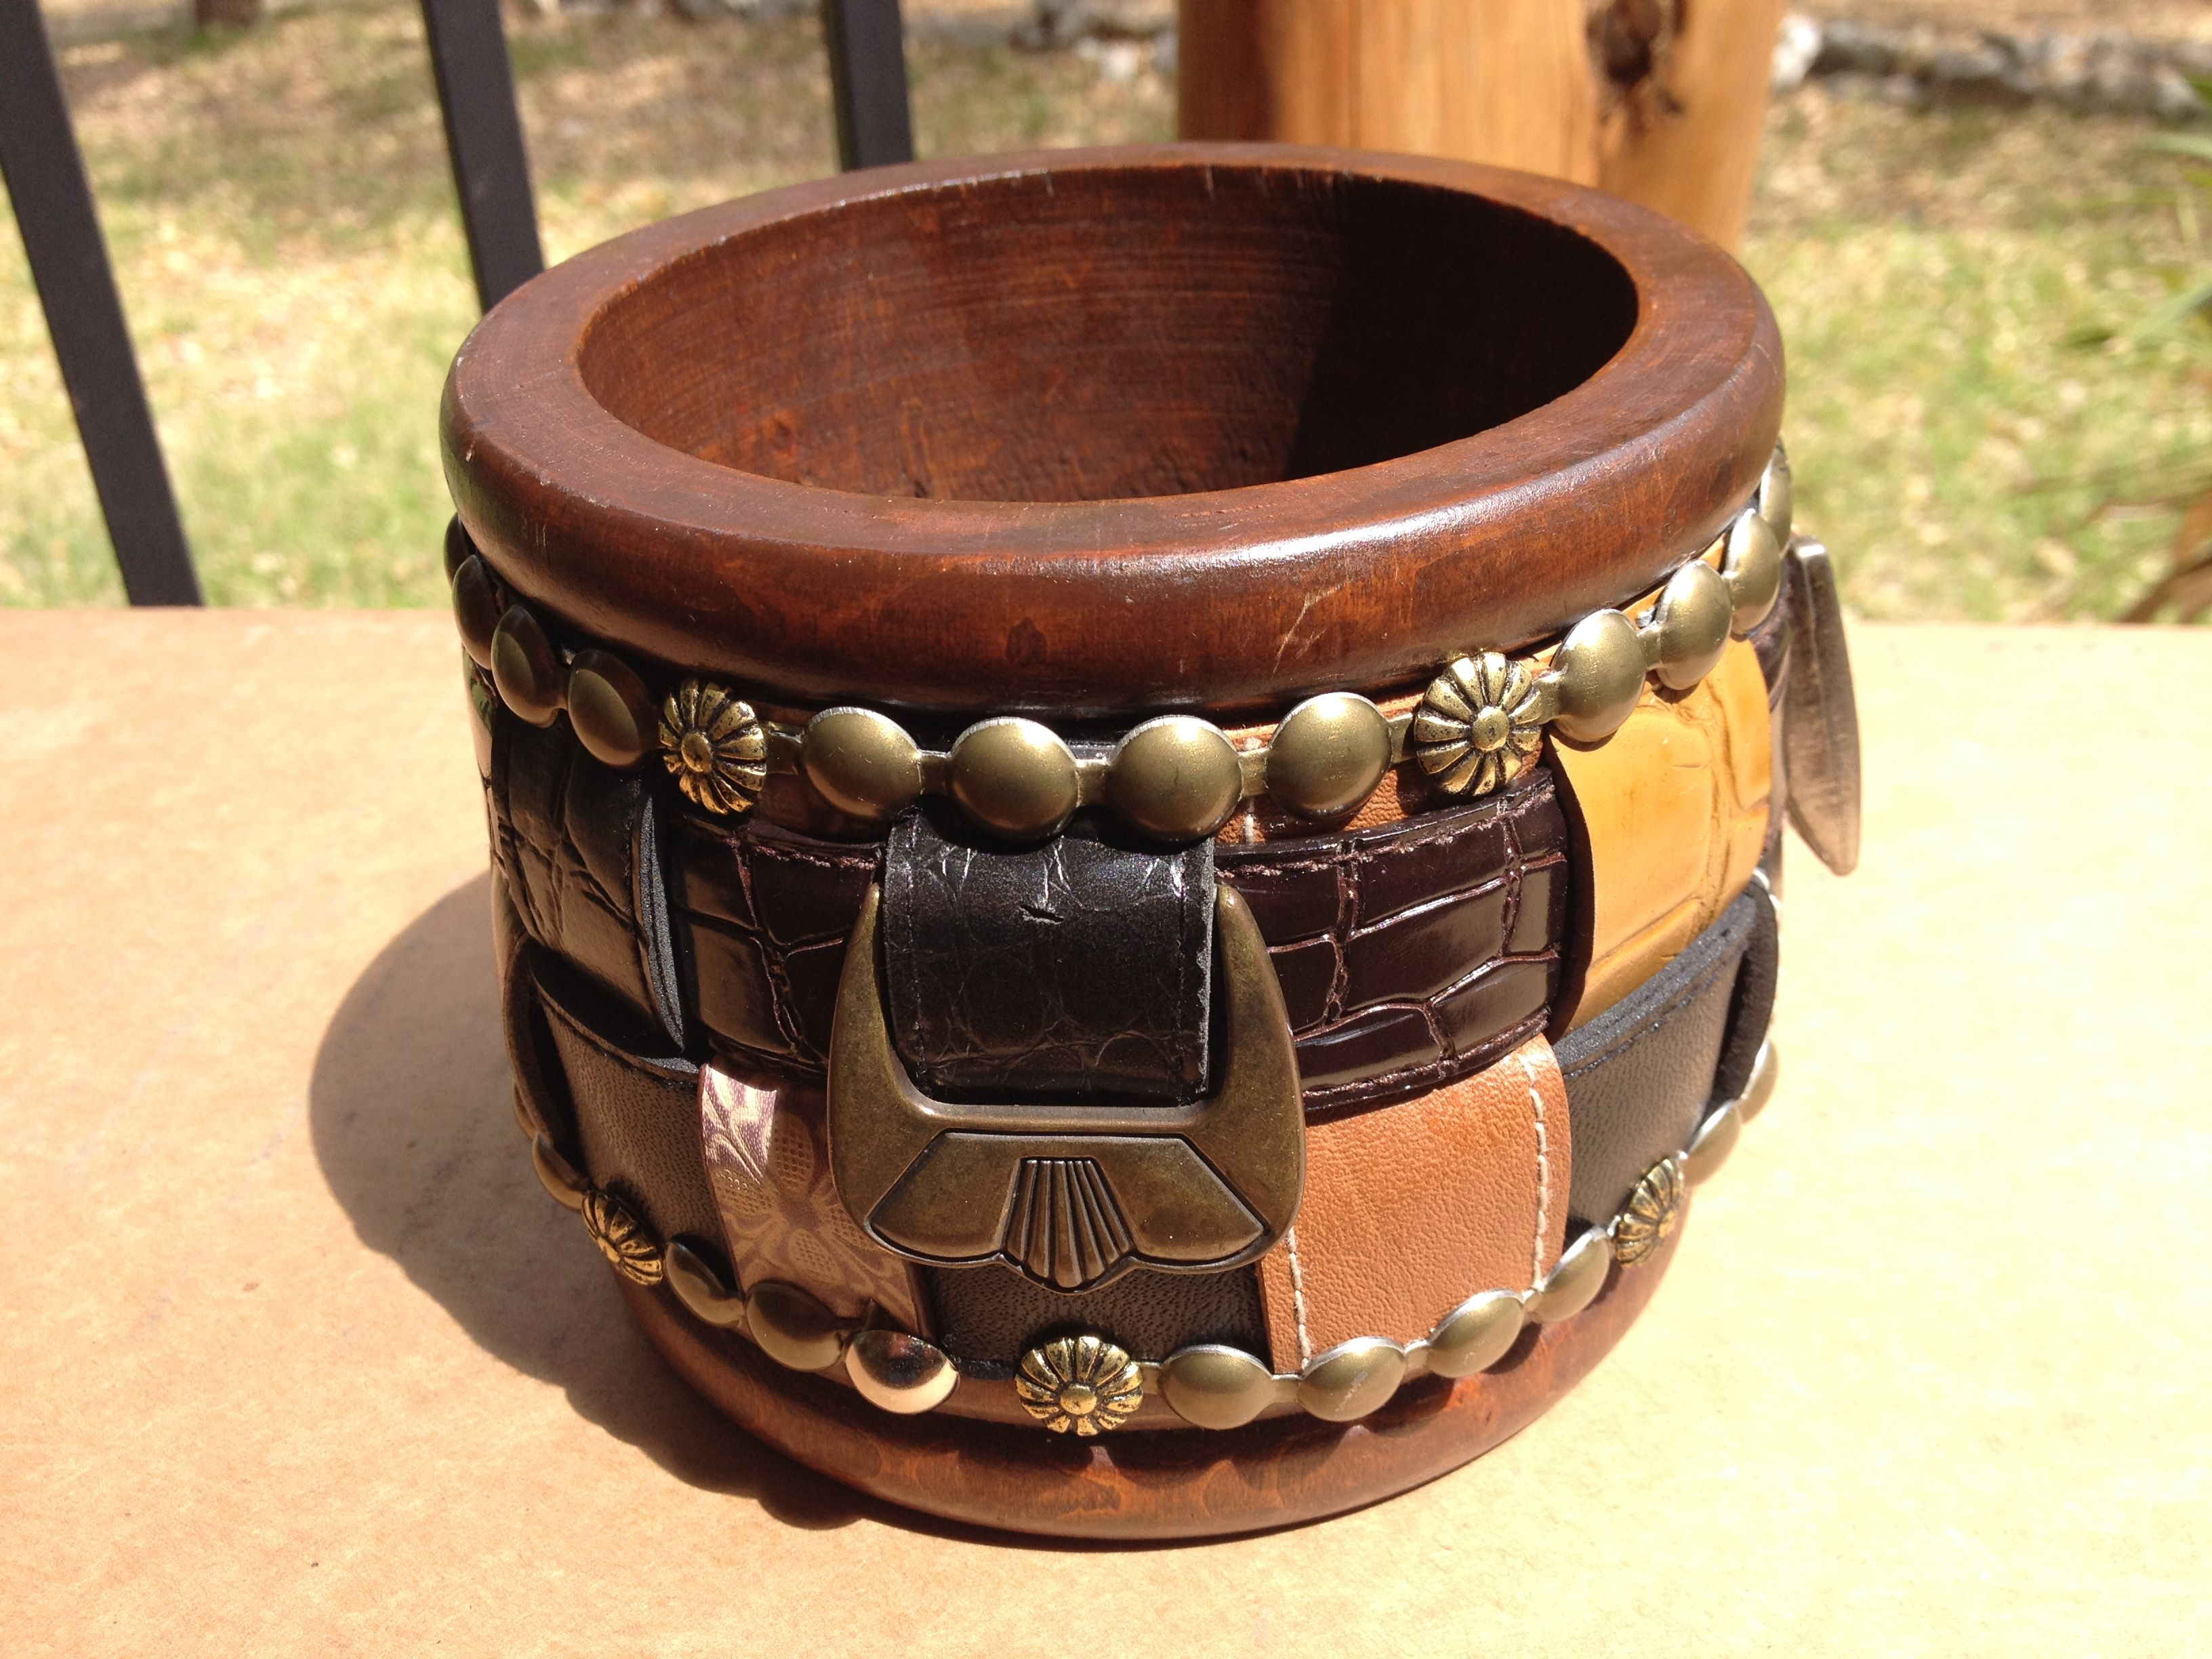 Small buckles for crafts - Small Wooden Bowl I Found At Thrift Store Added Belts And Buckles And Going To